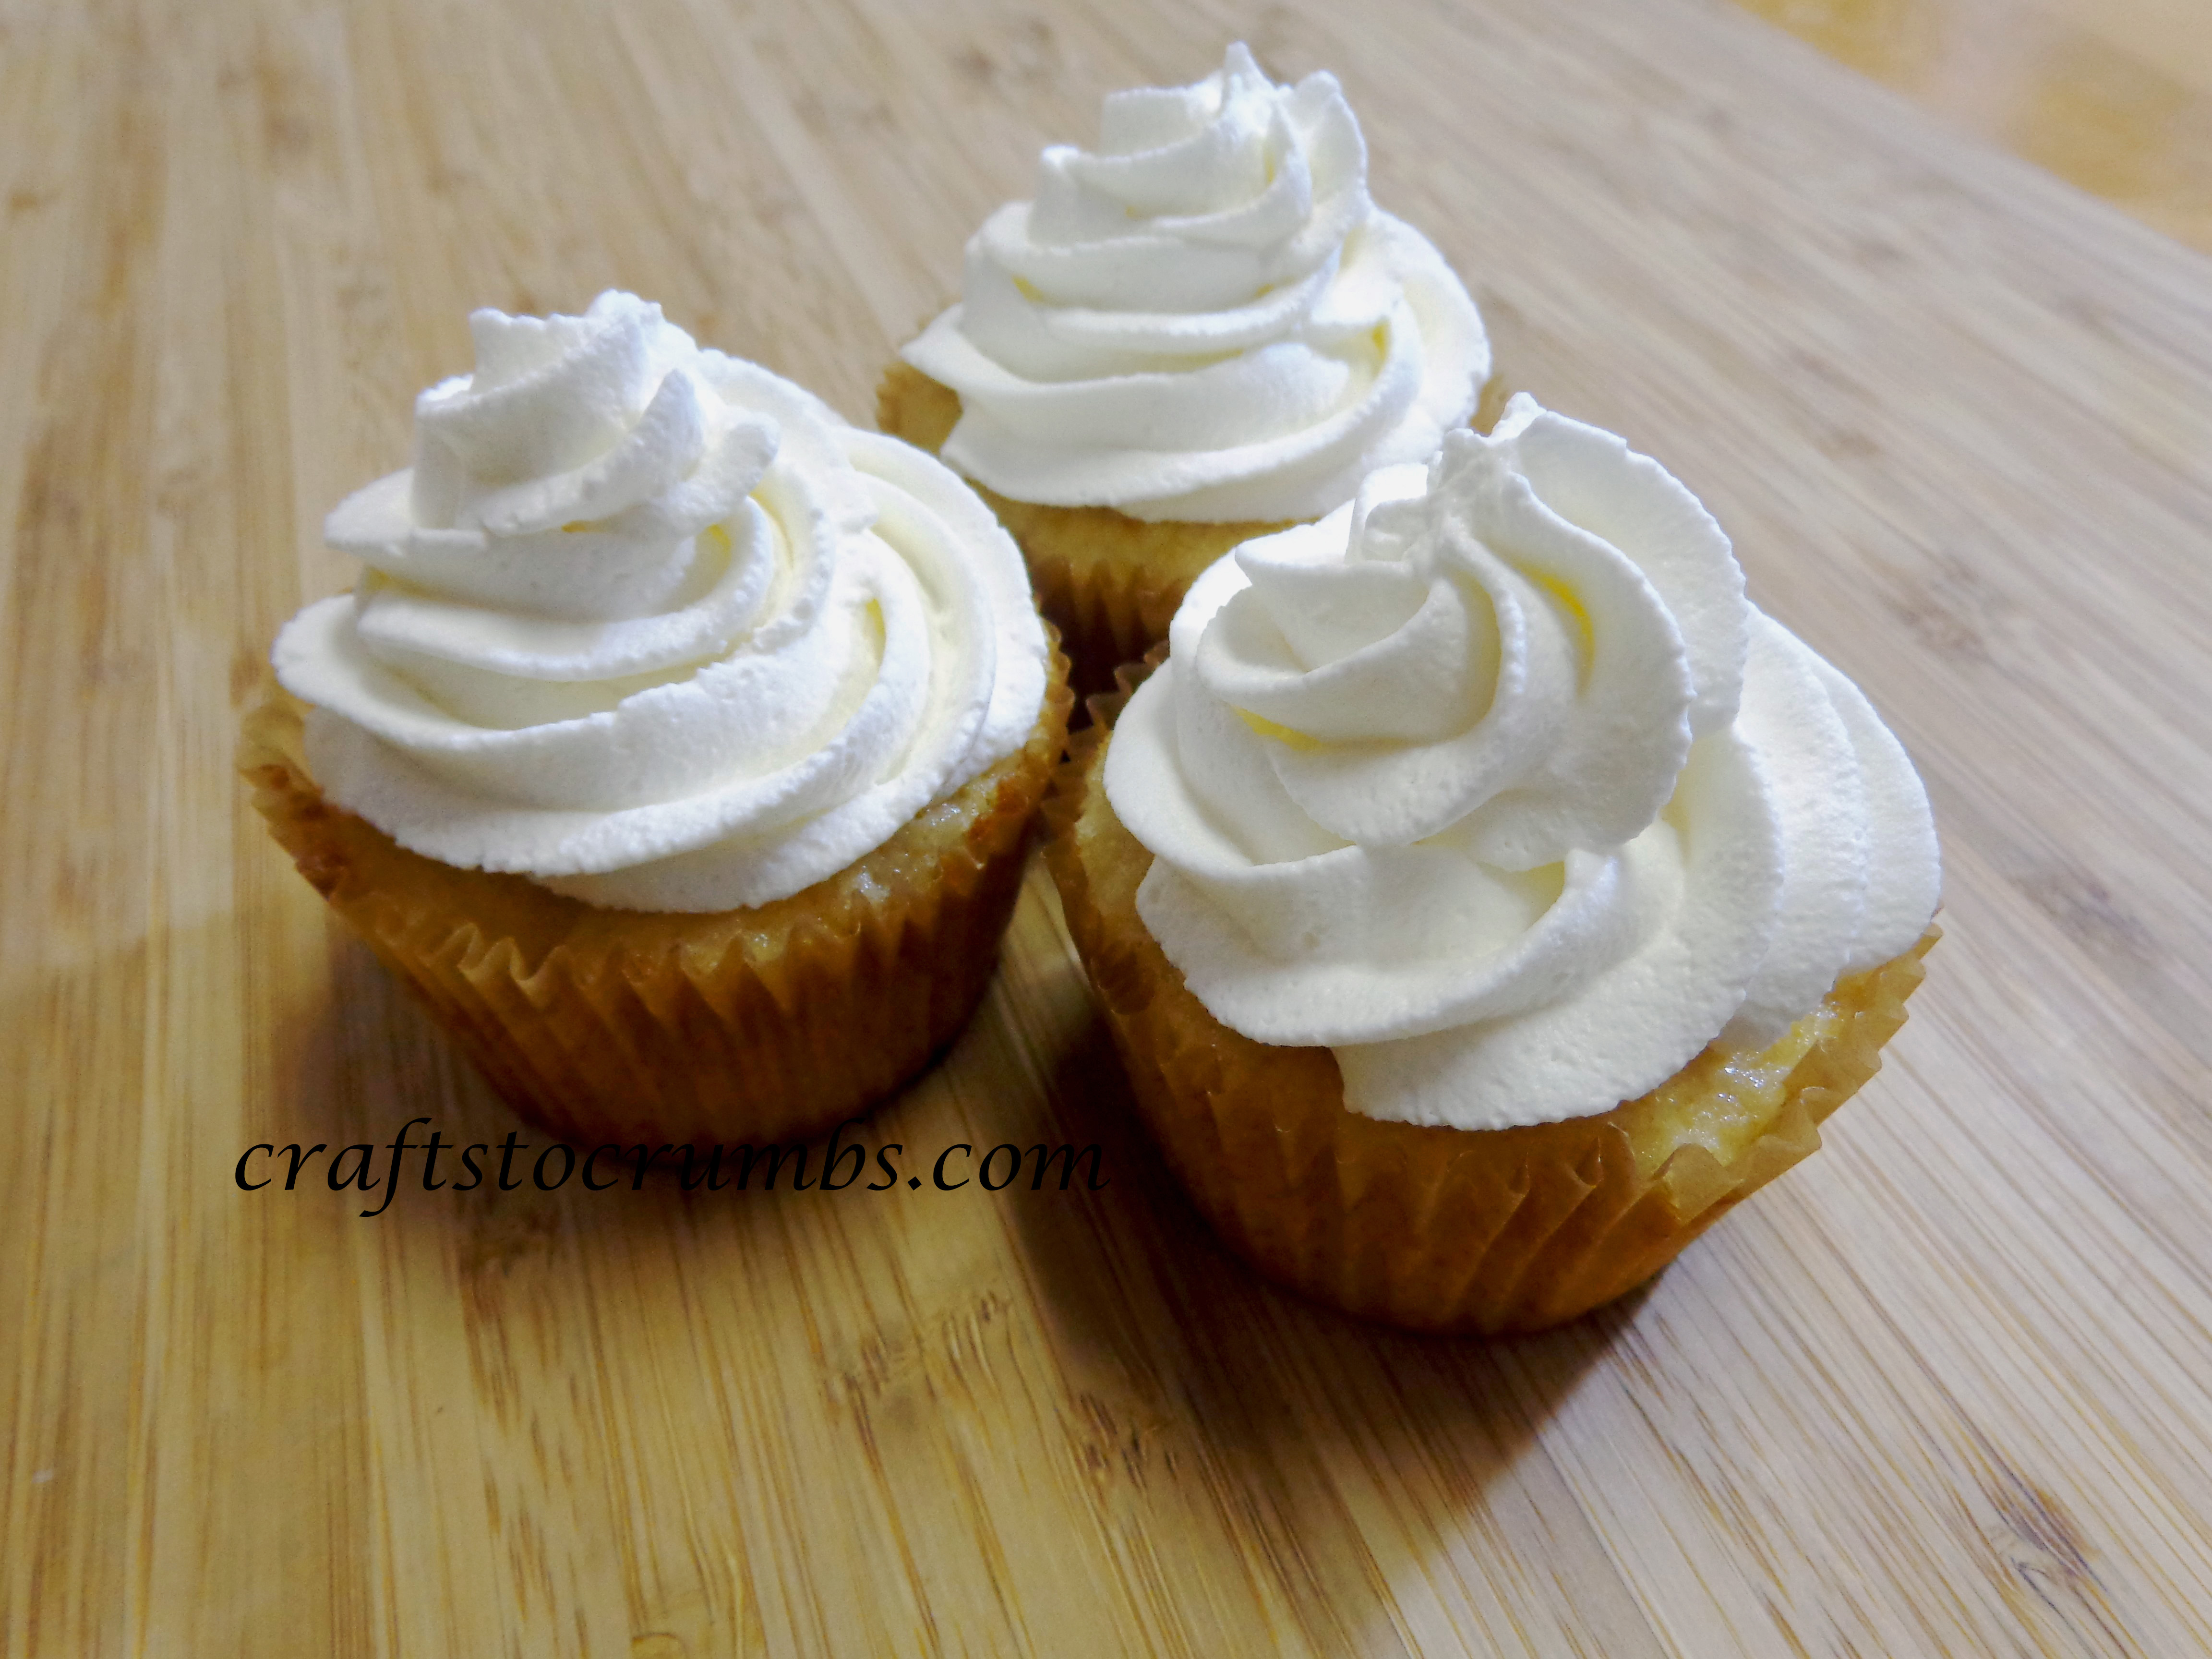 Crafts to Crumbs Whipped Cream Frosting